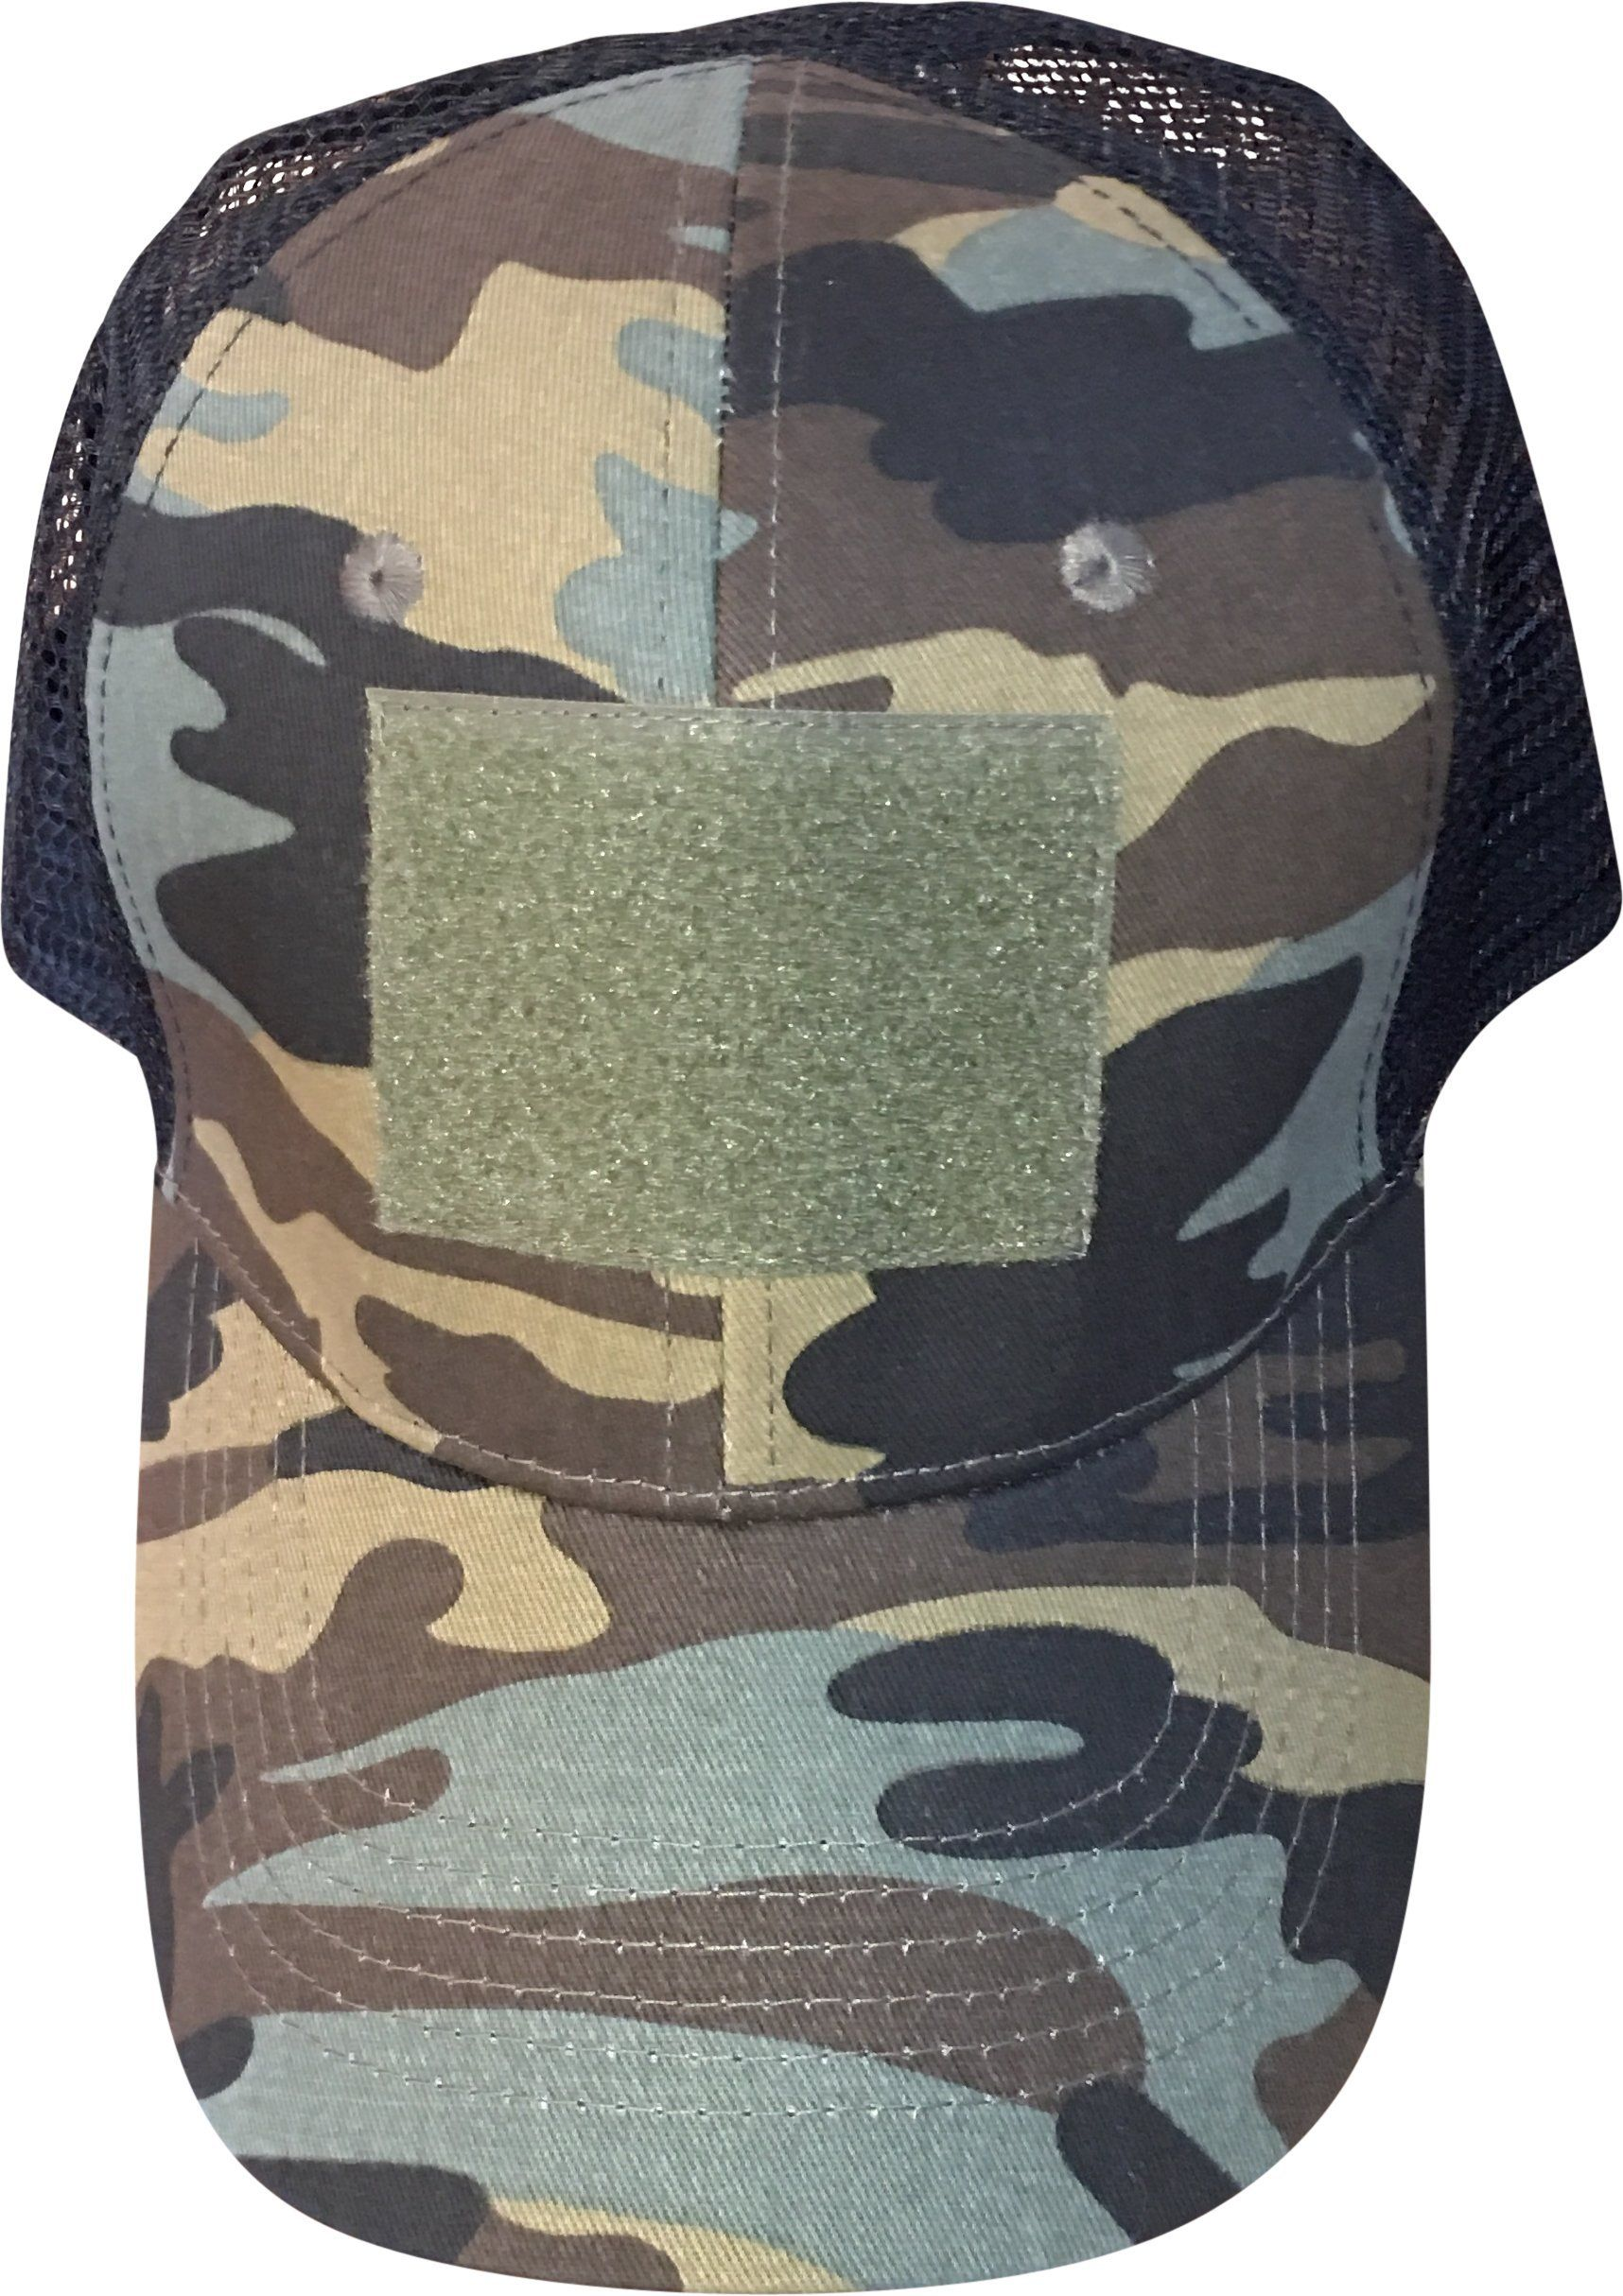 Tactical Patch Hat. High Quality Design and Thread. Perfect Size Front  Velcro for 2x3 364a05001f7b